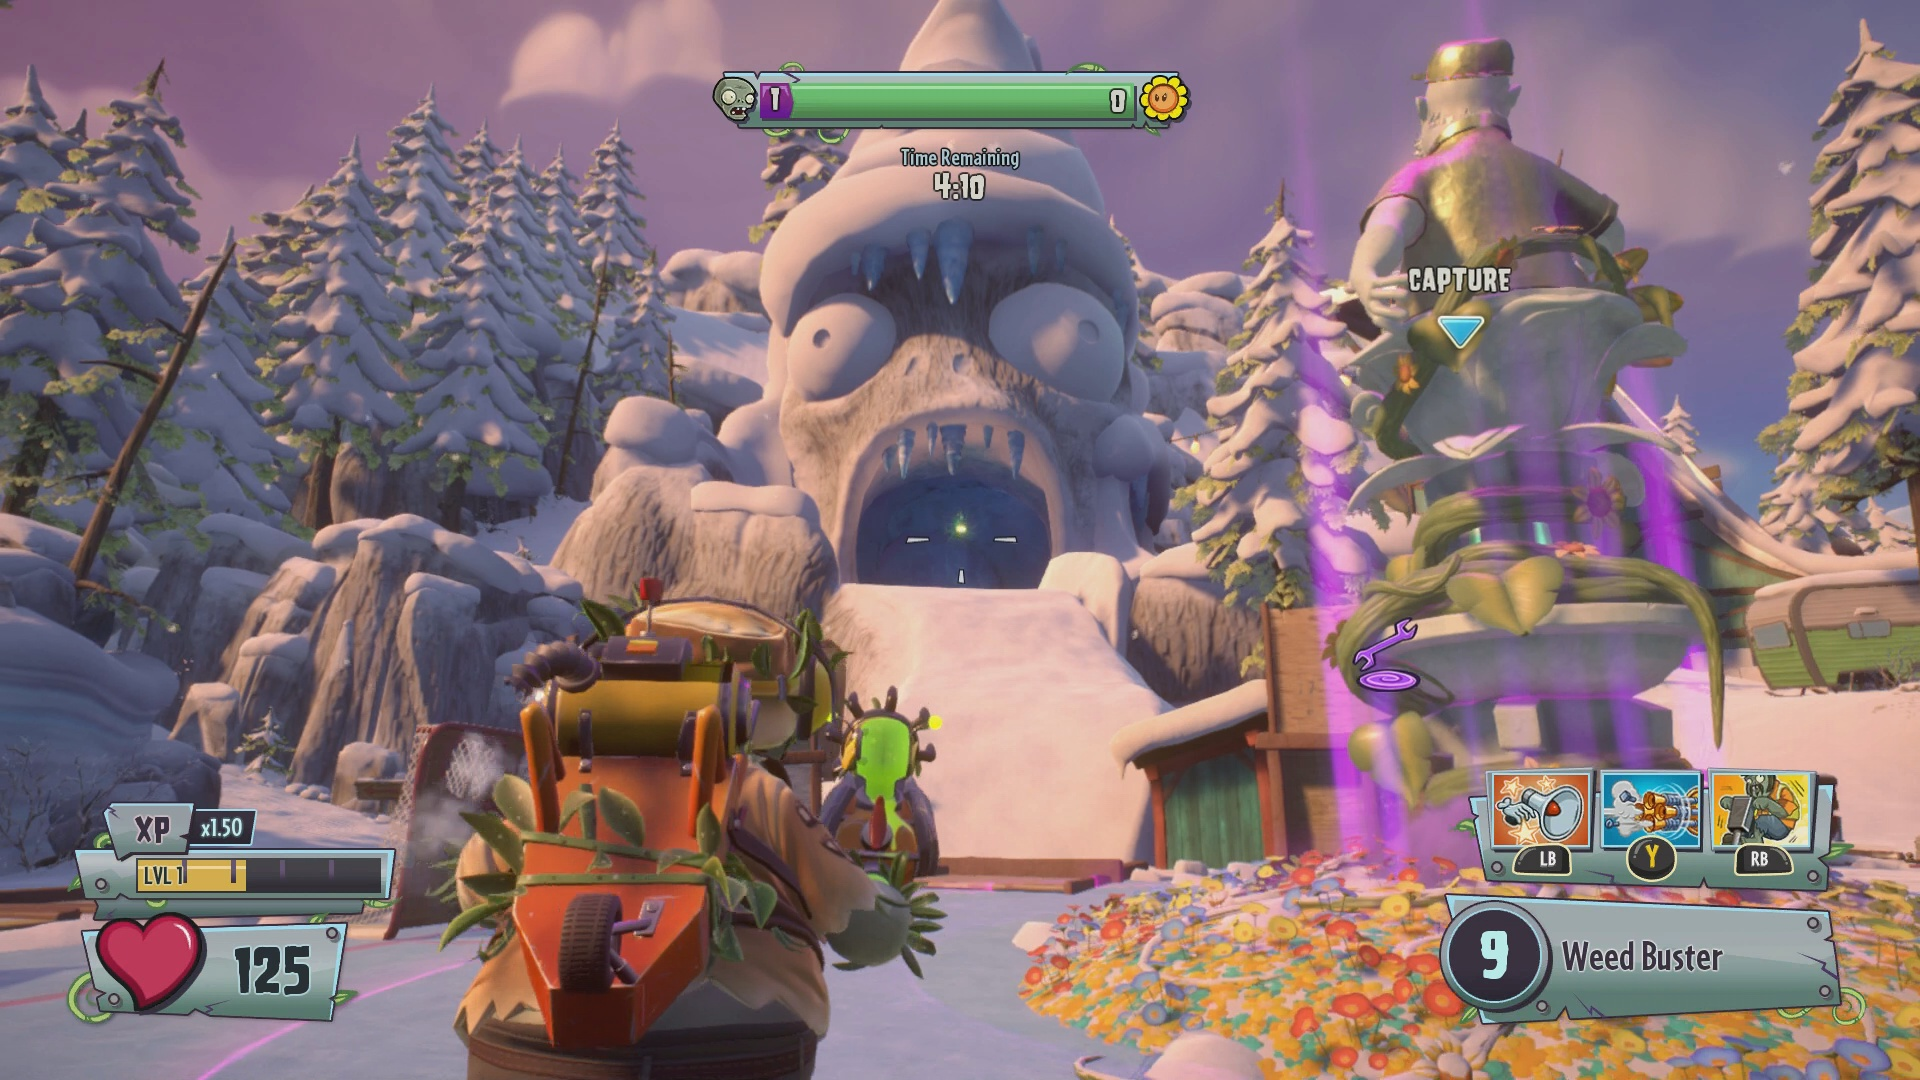 Plants vs zombies garden warfare 2 golden gnome multiplayer locations usgamer Plants vs zombies garden warfare 2 event calendar